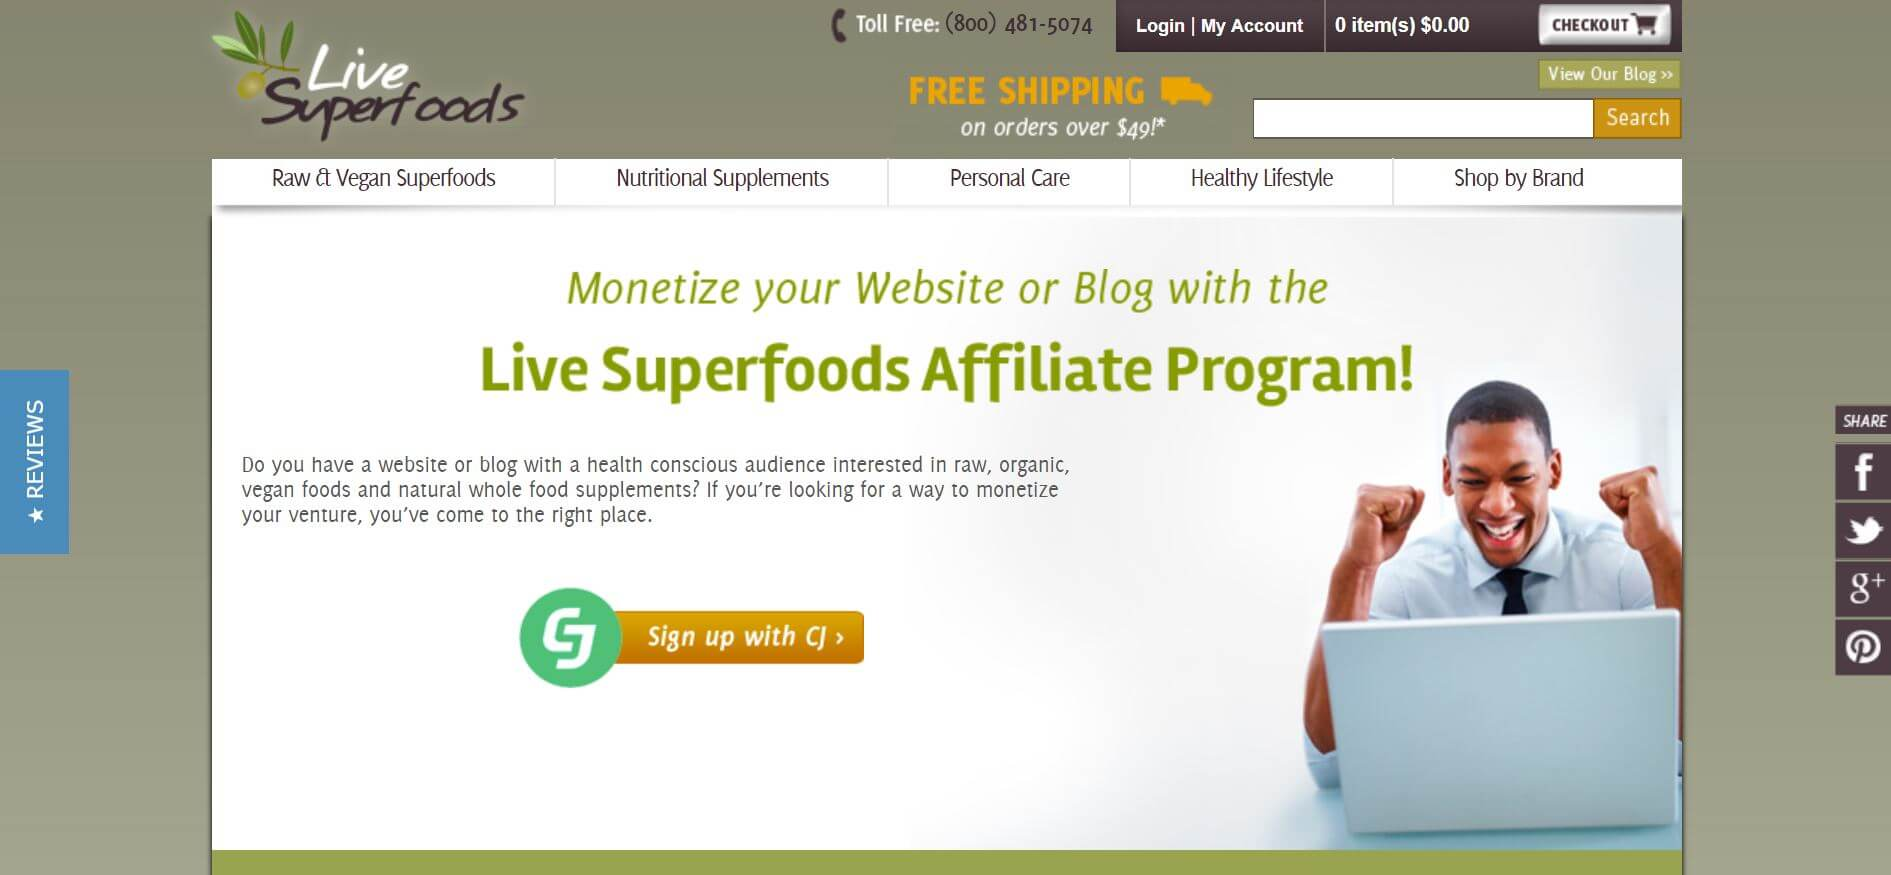 screenshot of the affiliate sign up page for Live Superfoods